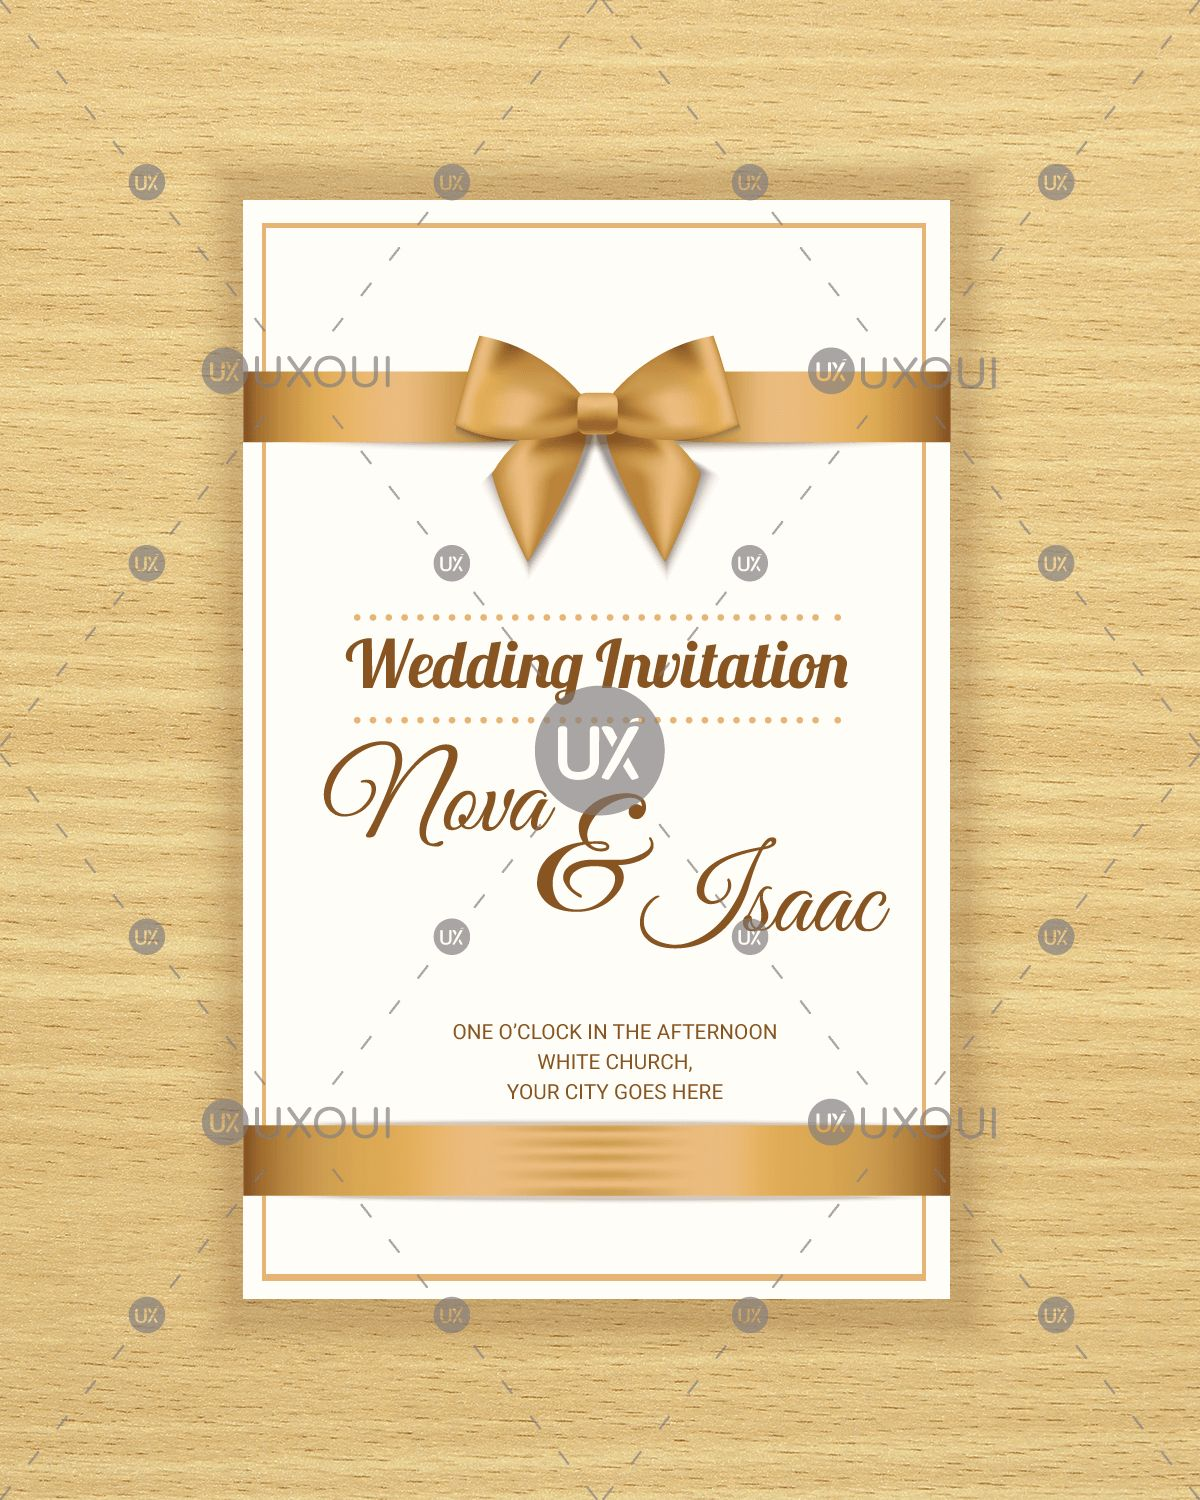 Wedding Invitation Card Design Template Dalep Midnightpig Co Intended For Invi Marriage Invitation Card Free Invitation Cards Indian Wedding Invitation Cards